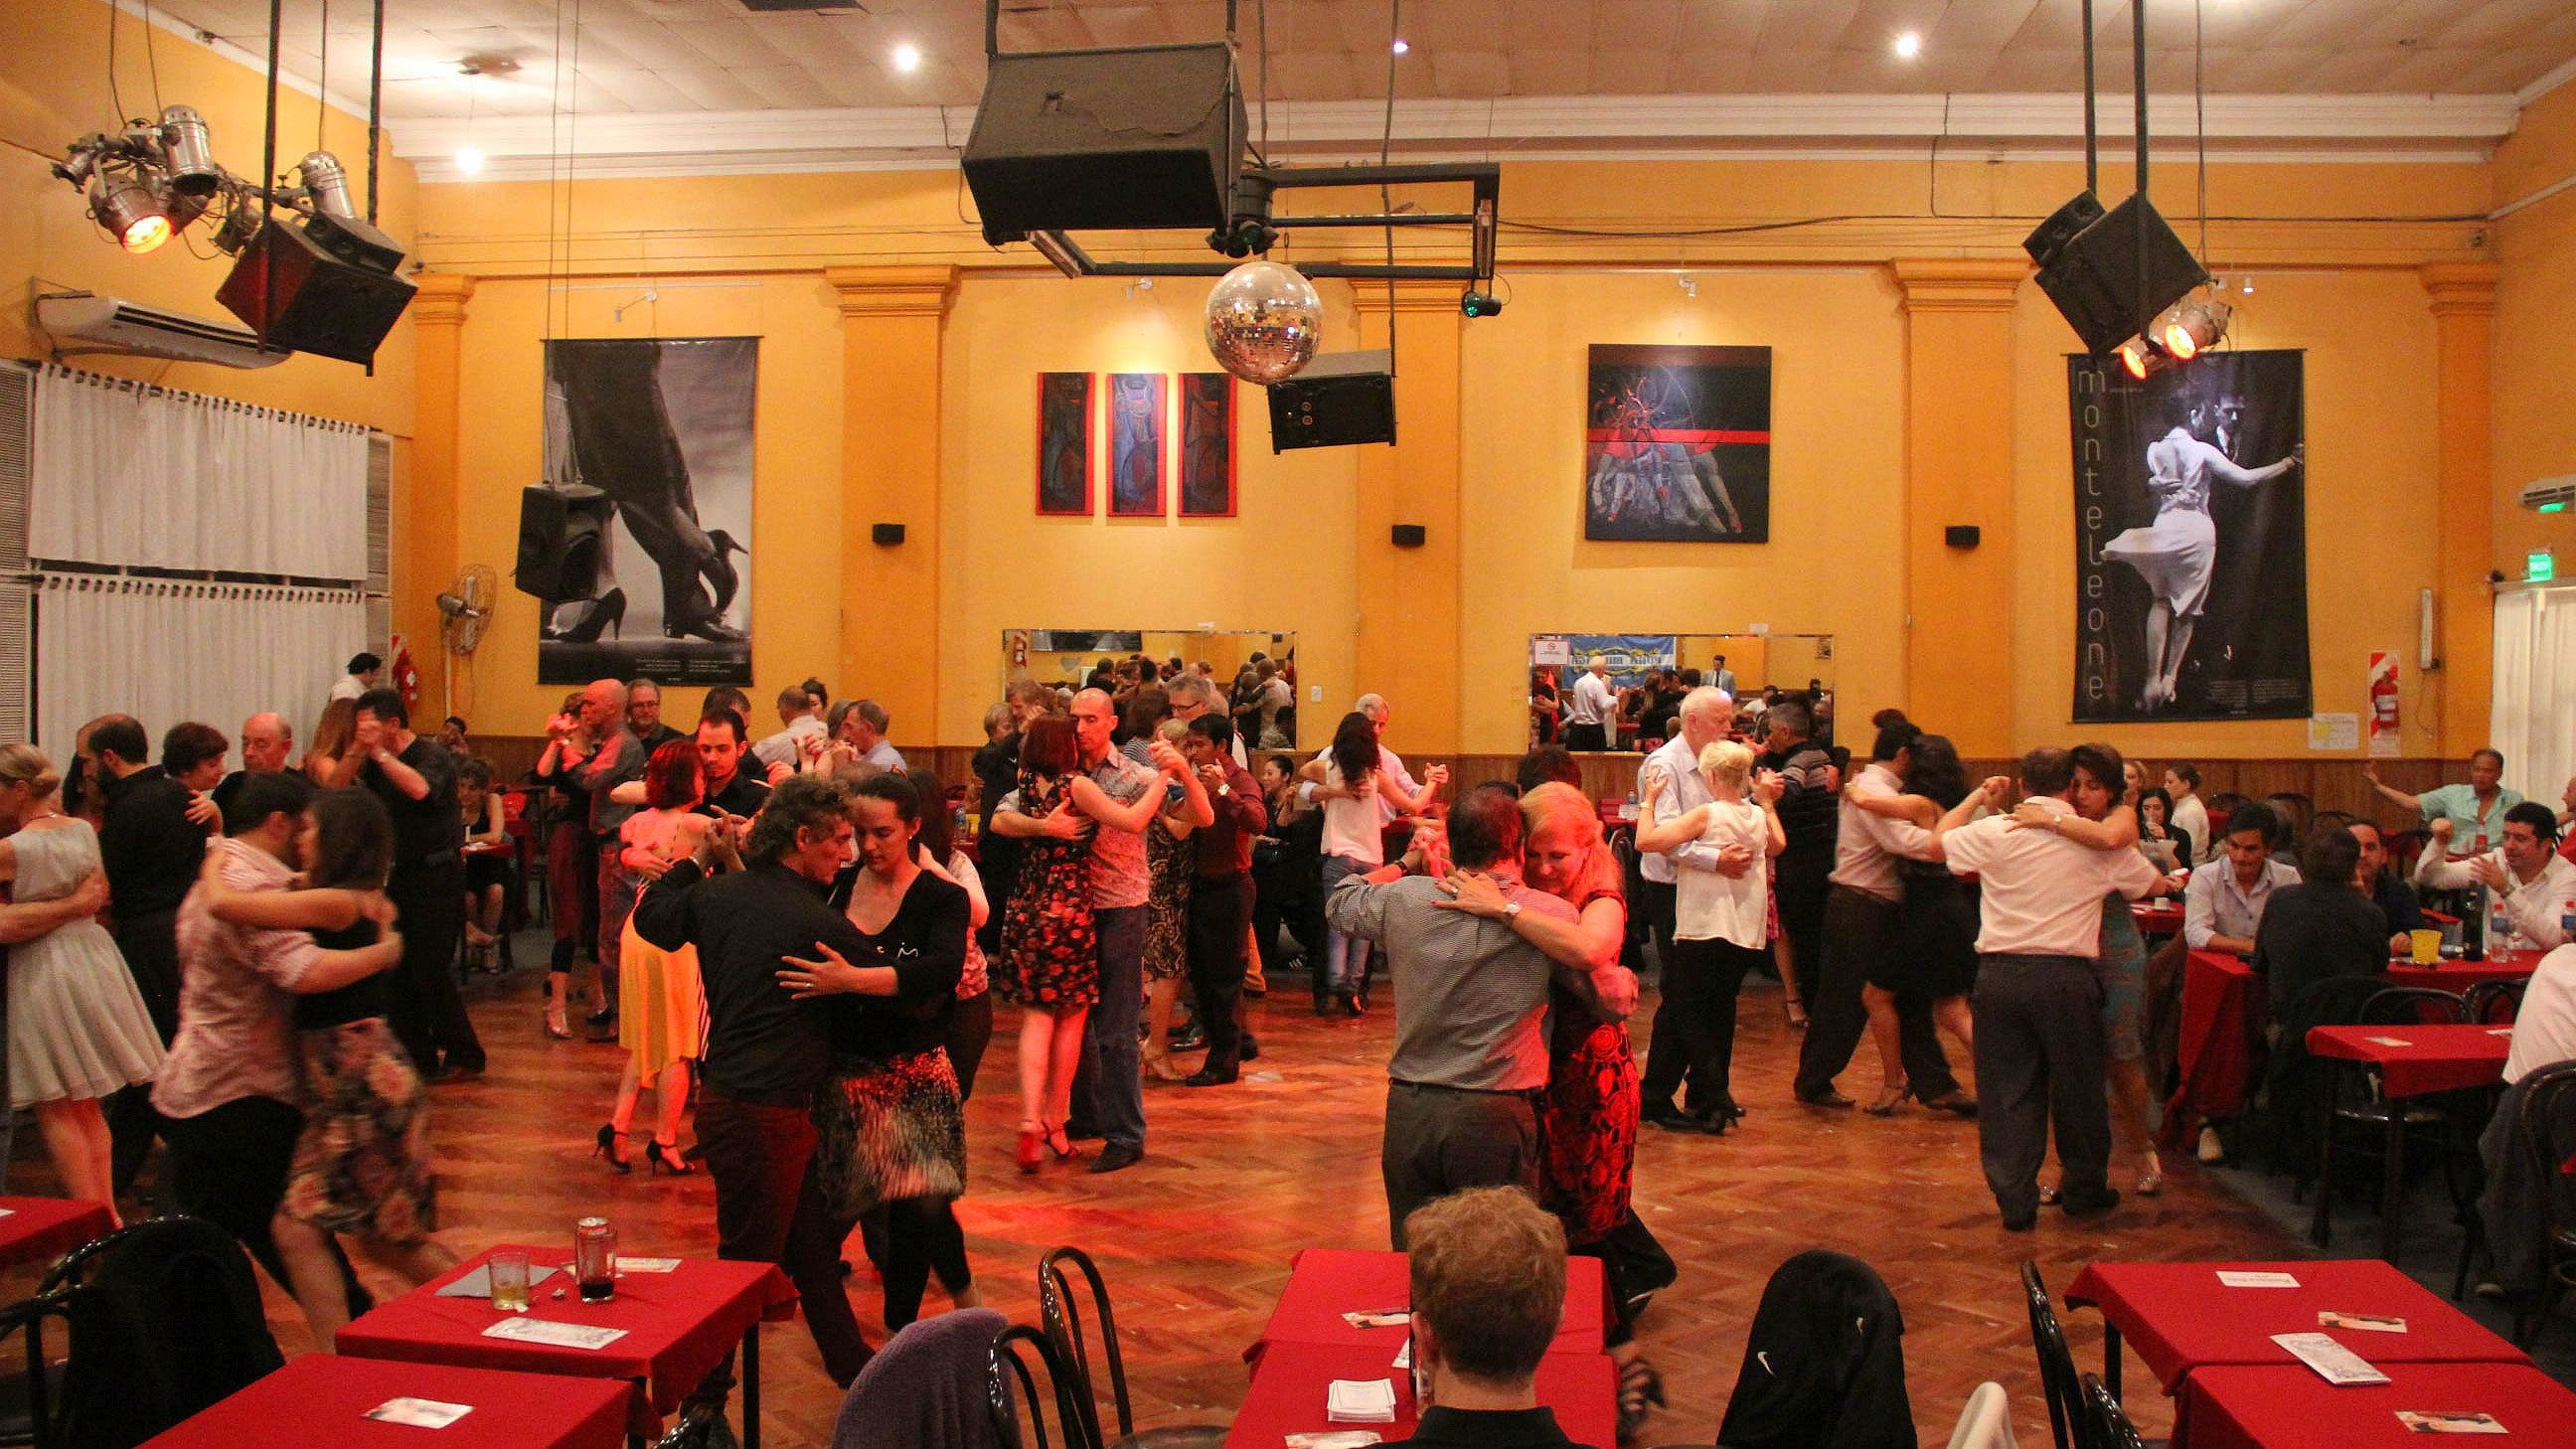 Couples dancing the Tango